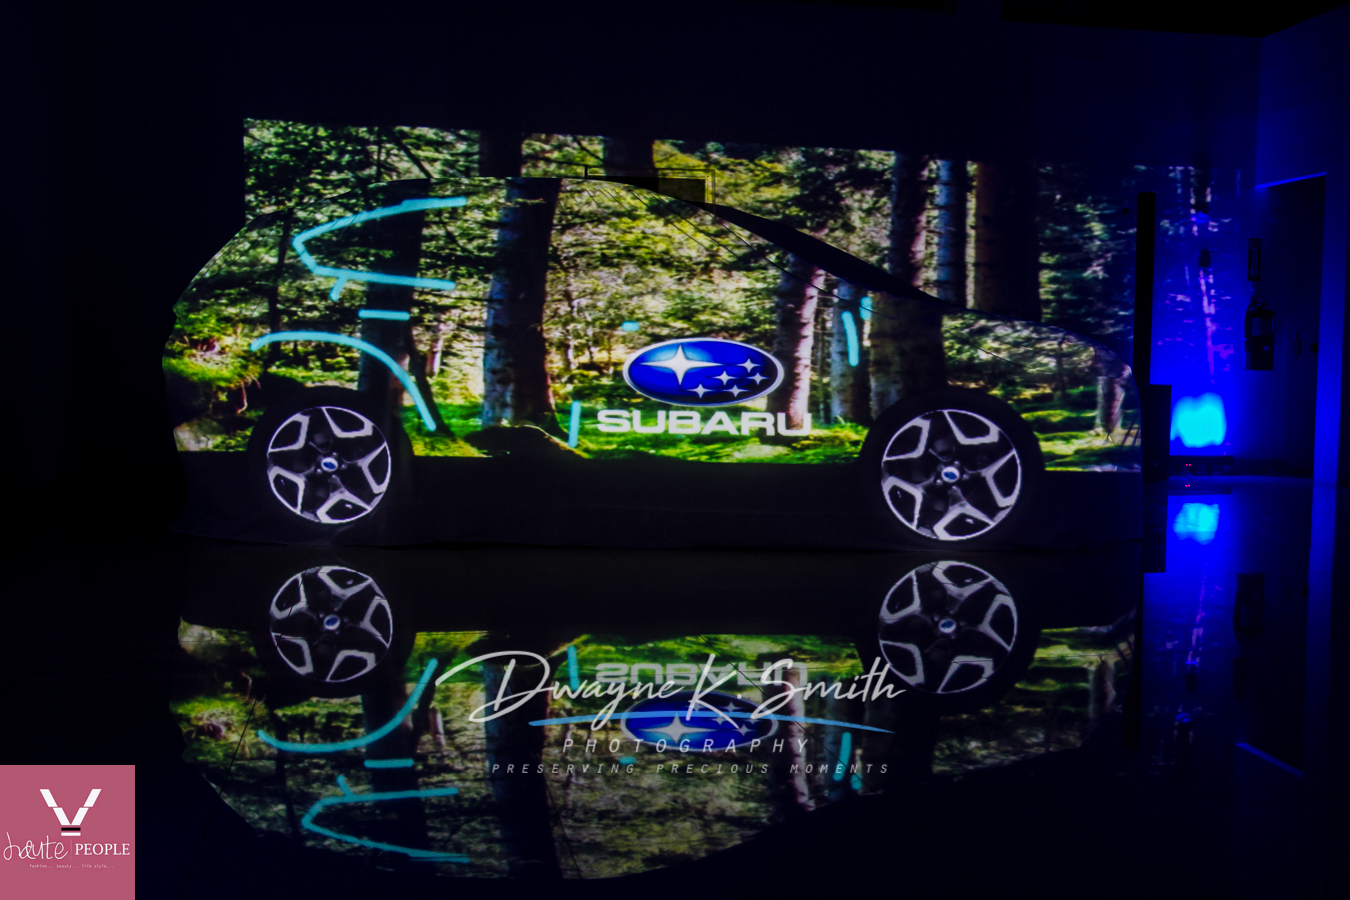 2018 subaru key. fine key the haute lifestyle was at the event to capture key moments thanks our  talented team of photographers dwayne k smith and dale stephenson inside 2018 subaru